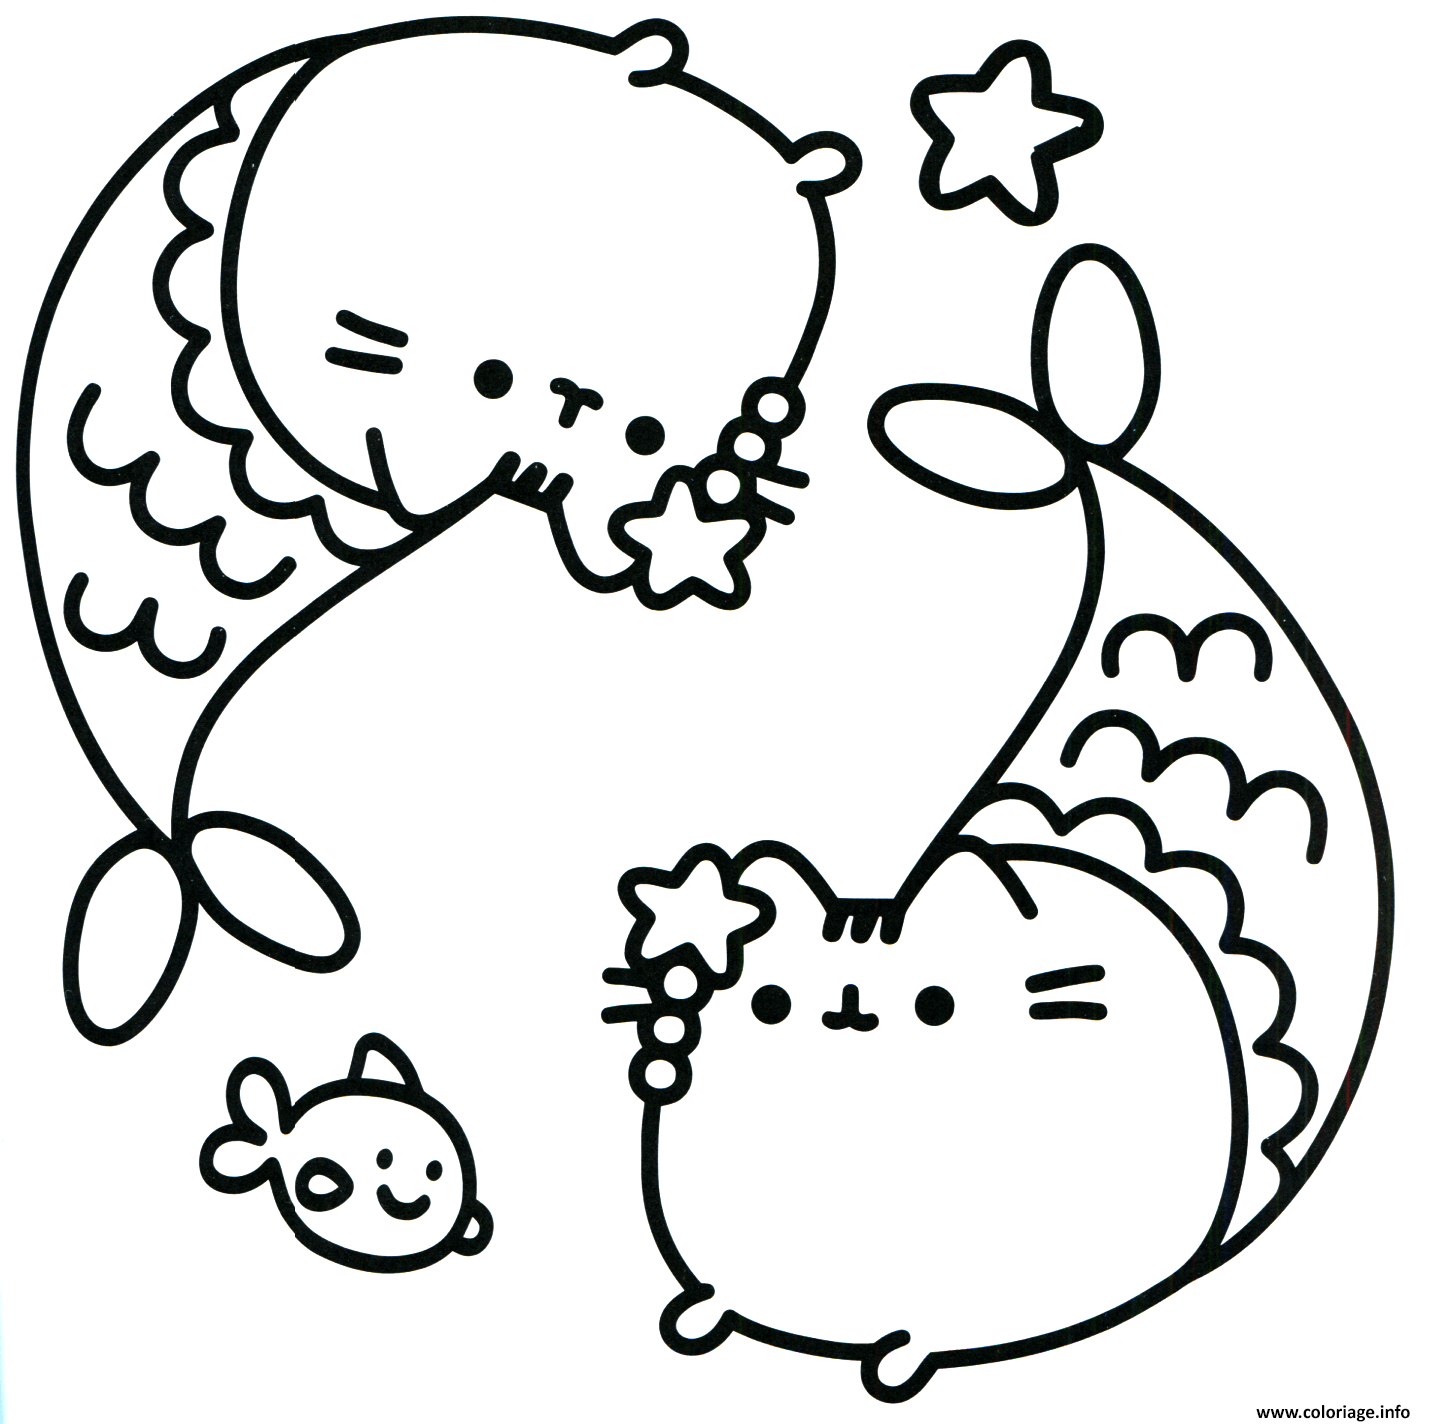 Coloriage Pusheen Mermaid Dessin à Imprimer